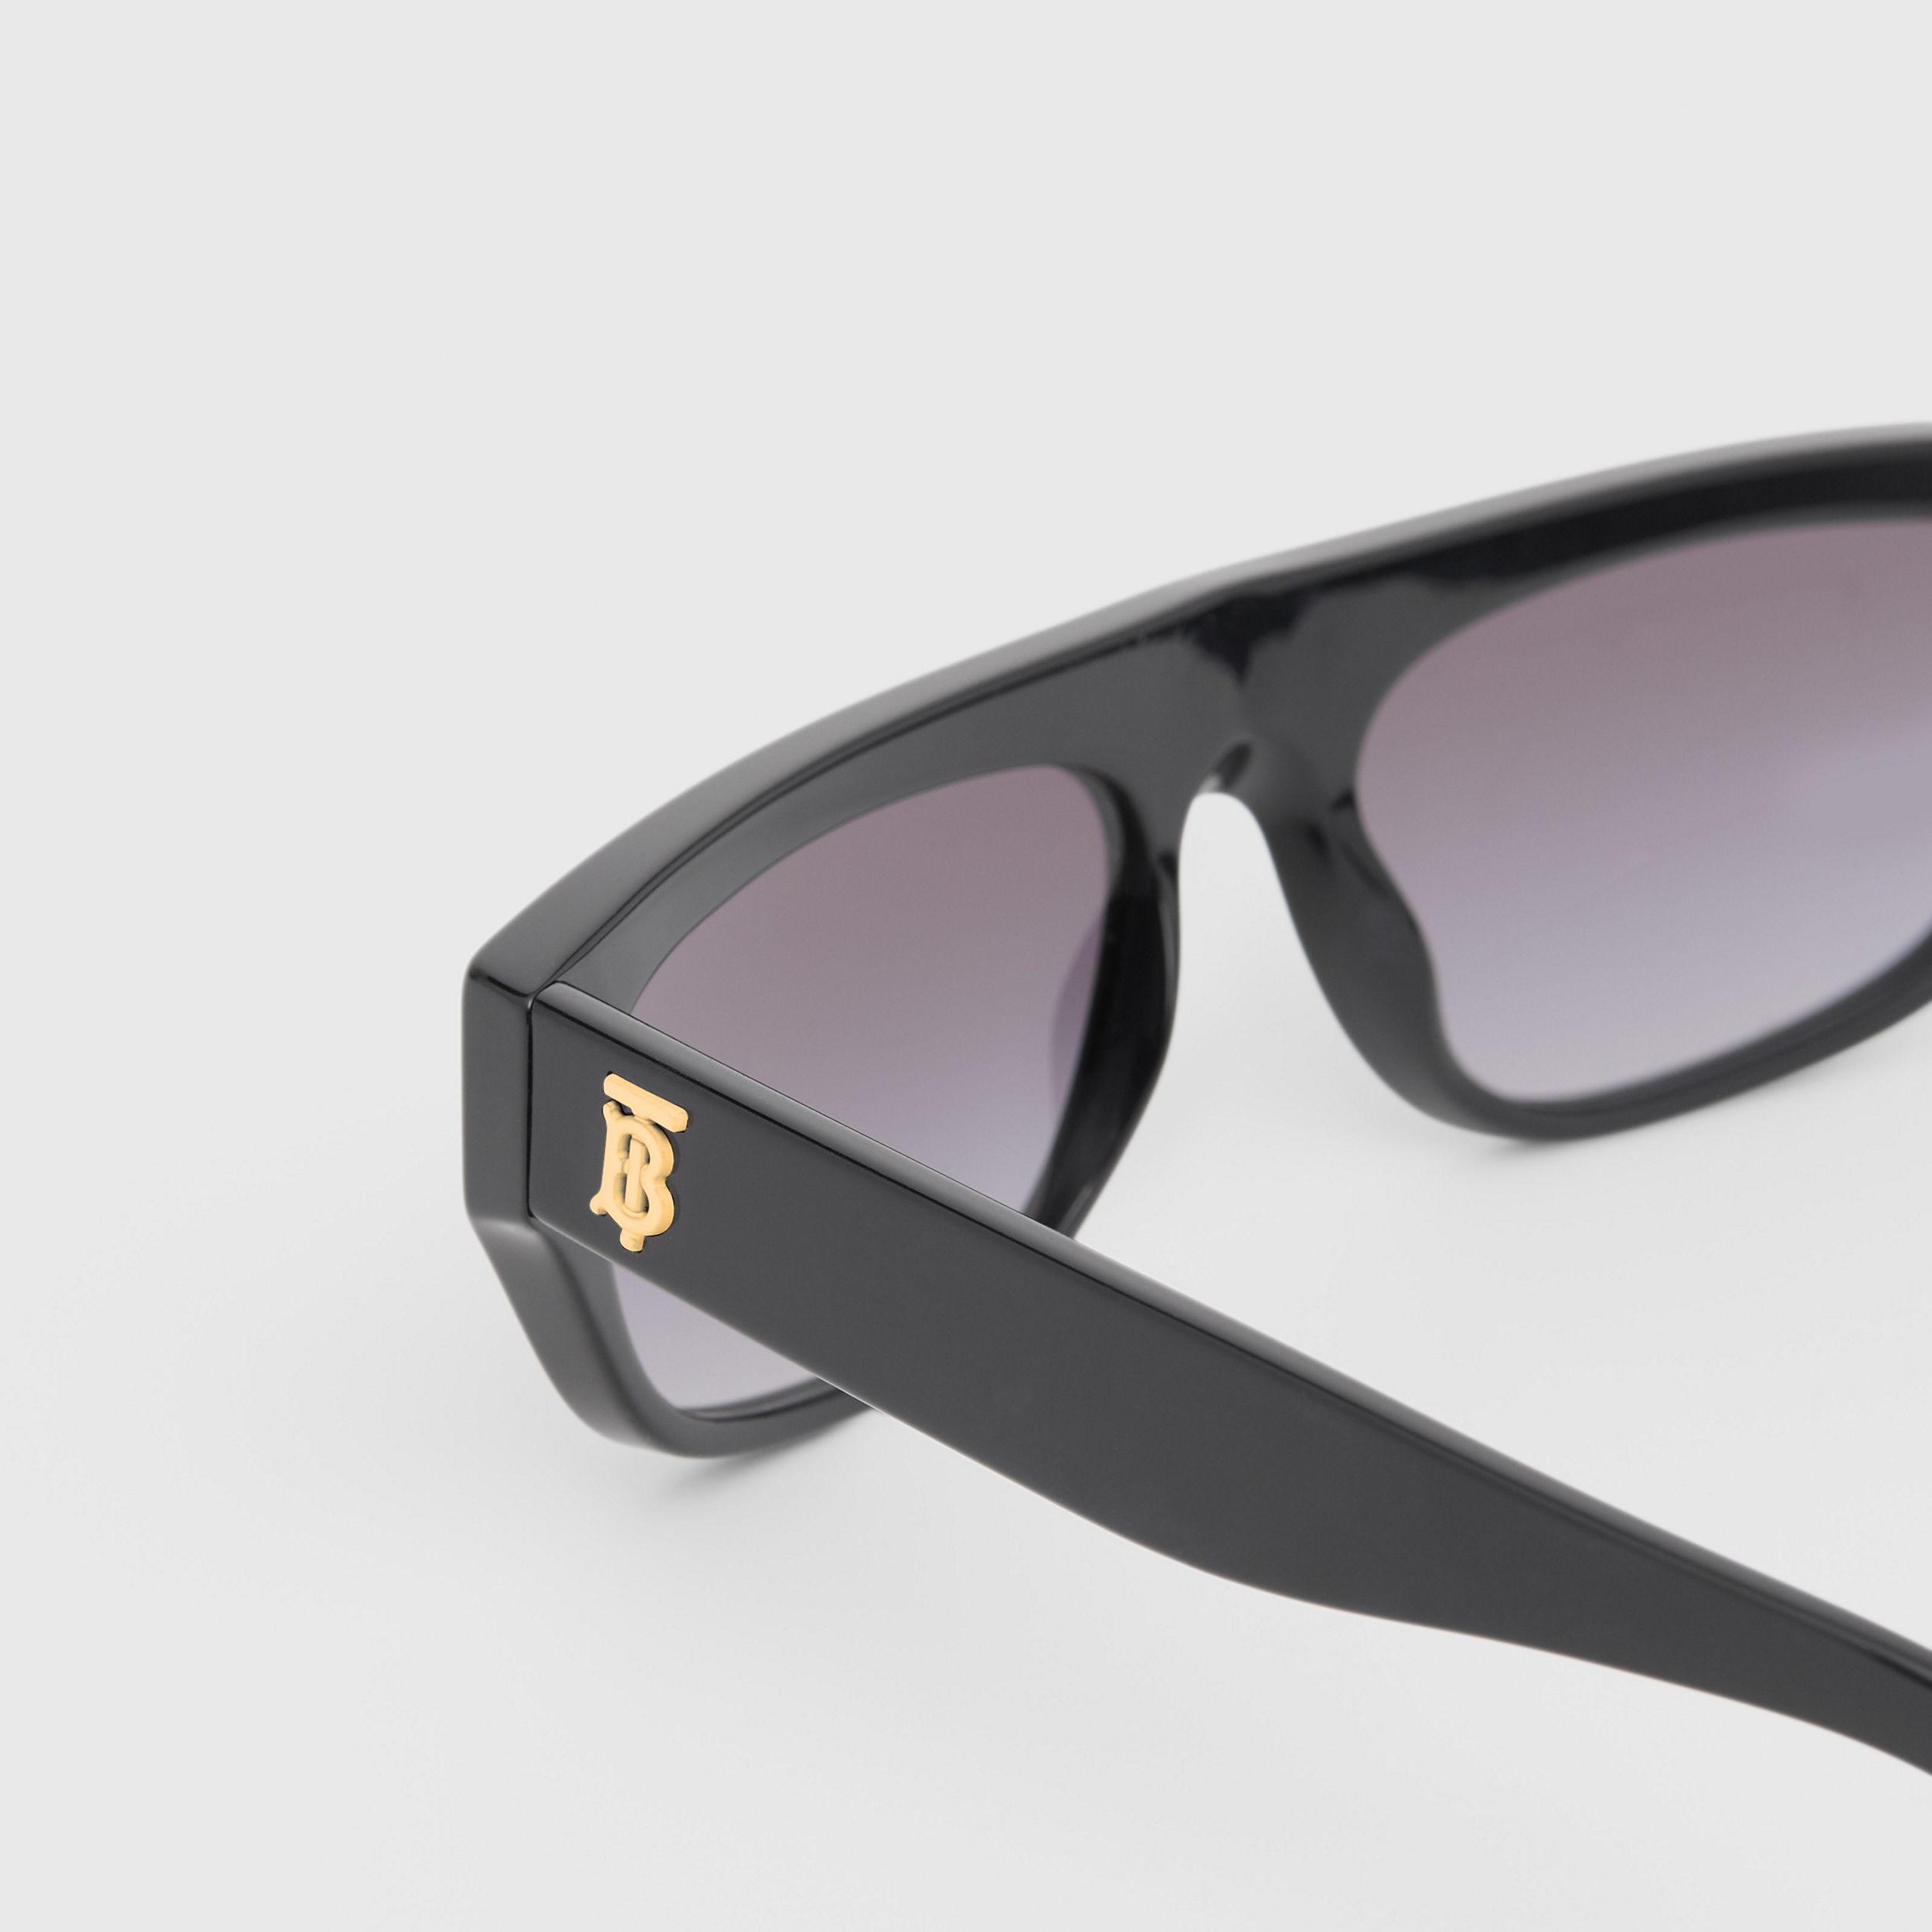 Monogram Motif Rectangular Frame Sunglasses in Black - Women | Burberry - 2